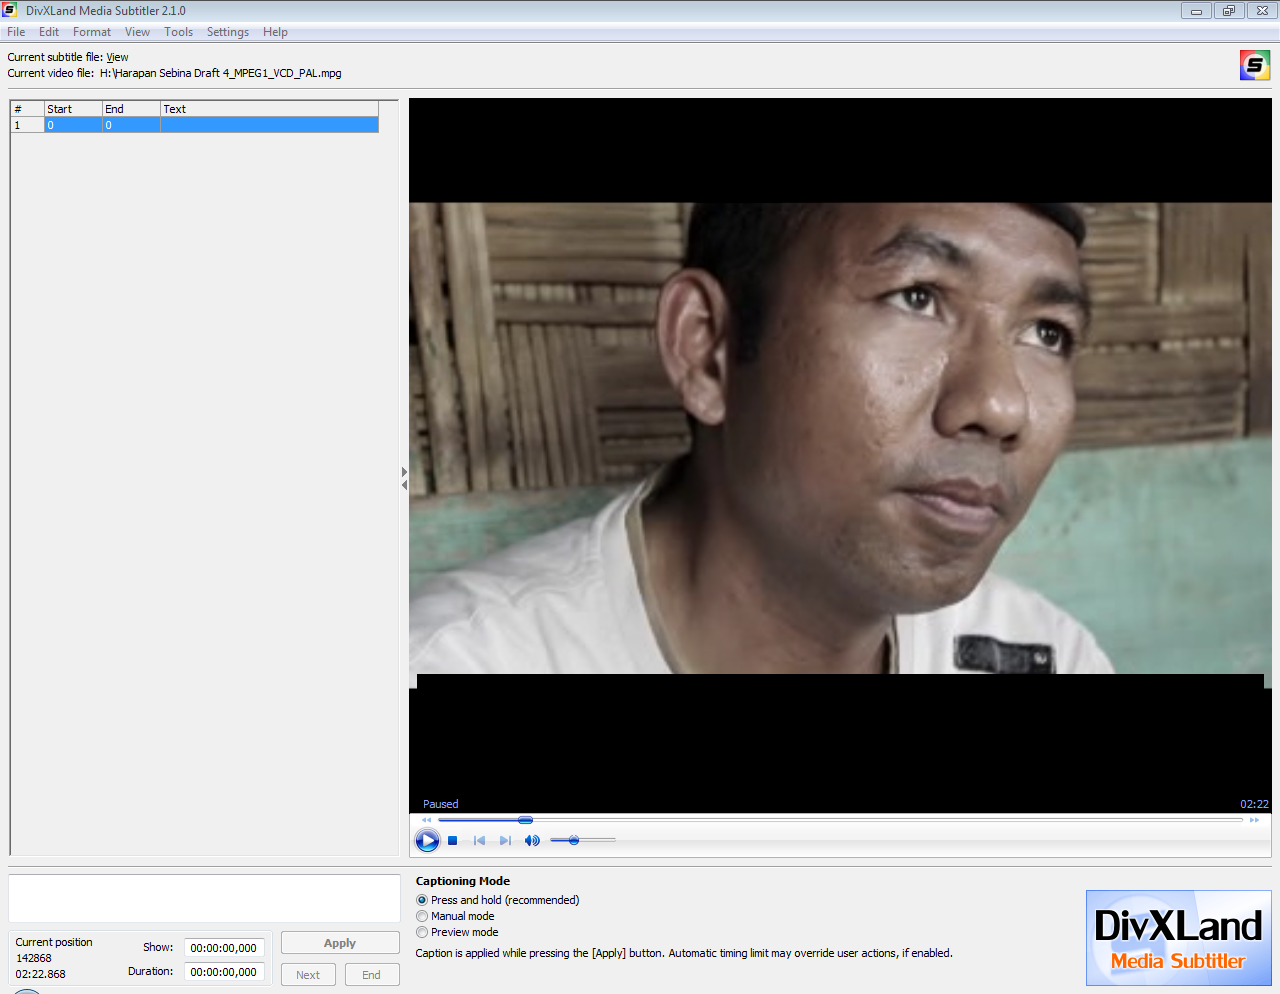 FOR YOU, WHO WANT TO BE A SUBTITLER, YOU CAN USE THESE